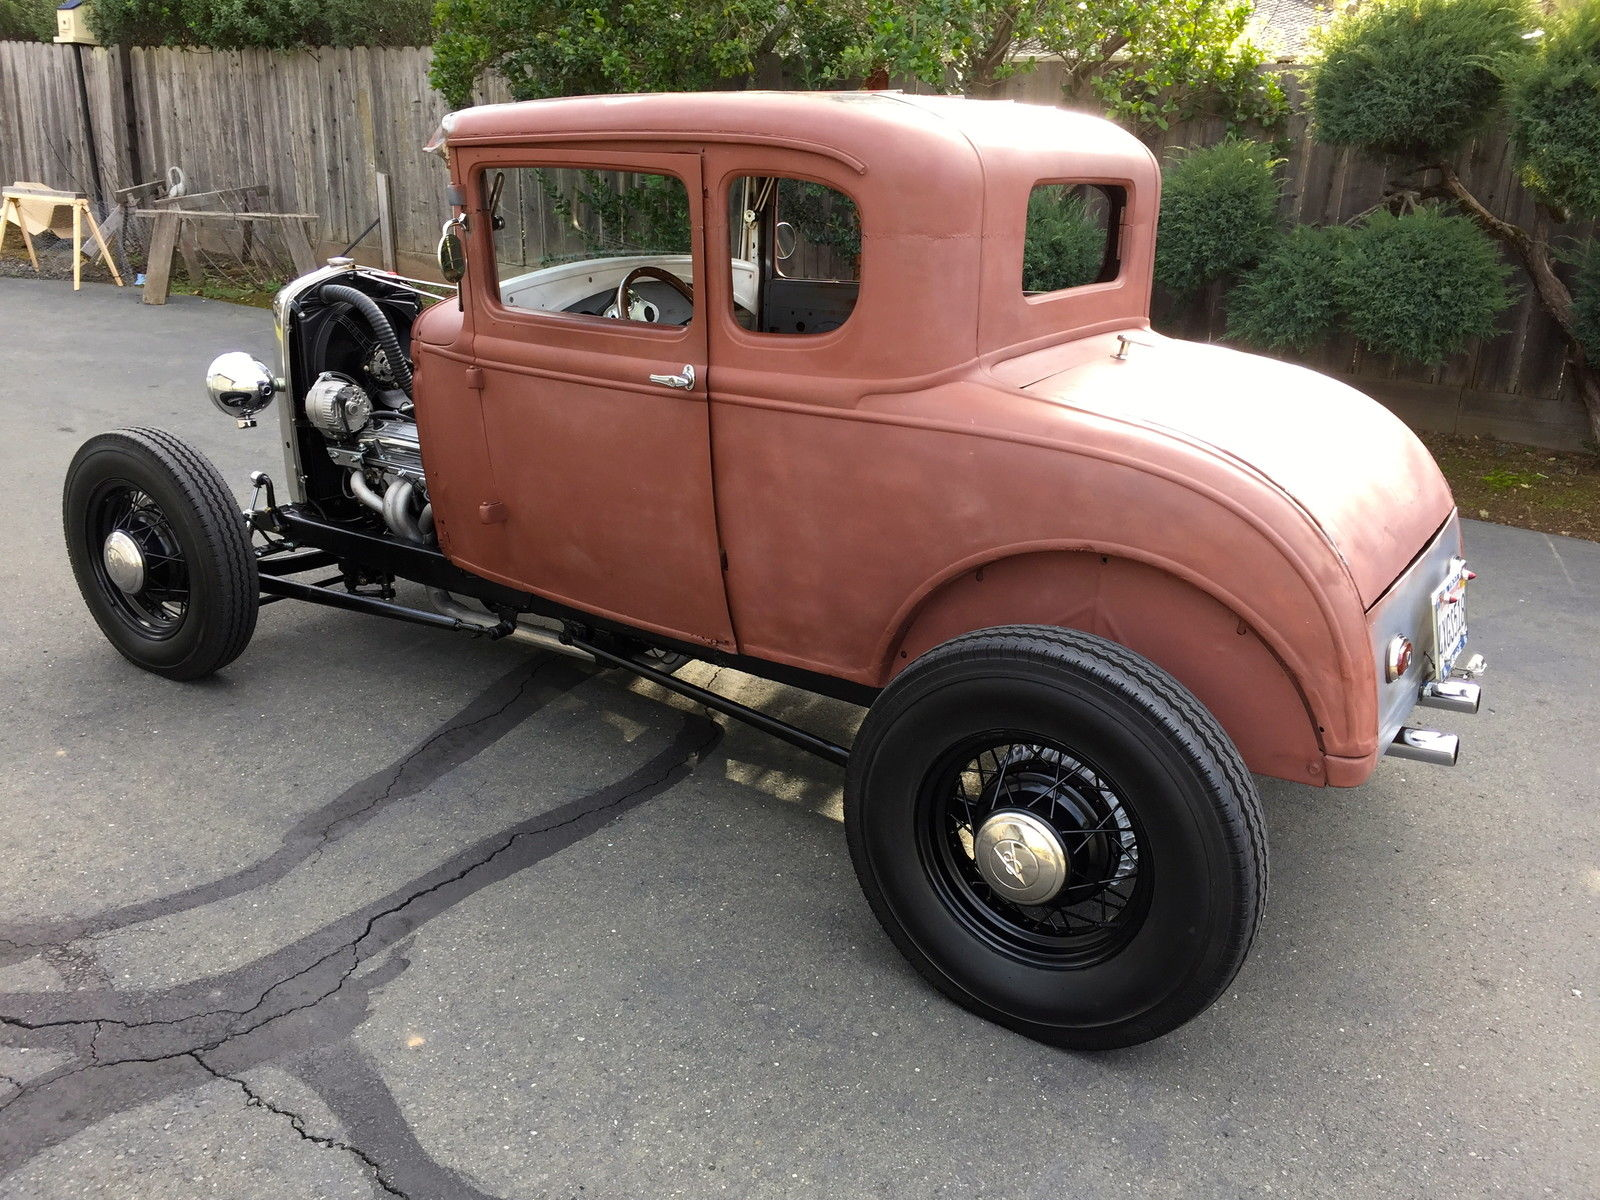 hight resolution of 1931 ford model a coupe hot rod v8 california car 1928 1929 1930 1929 model a